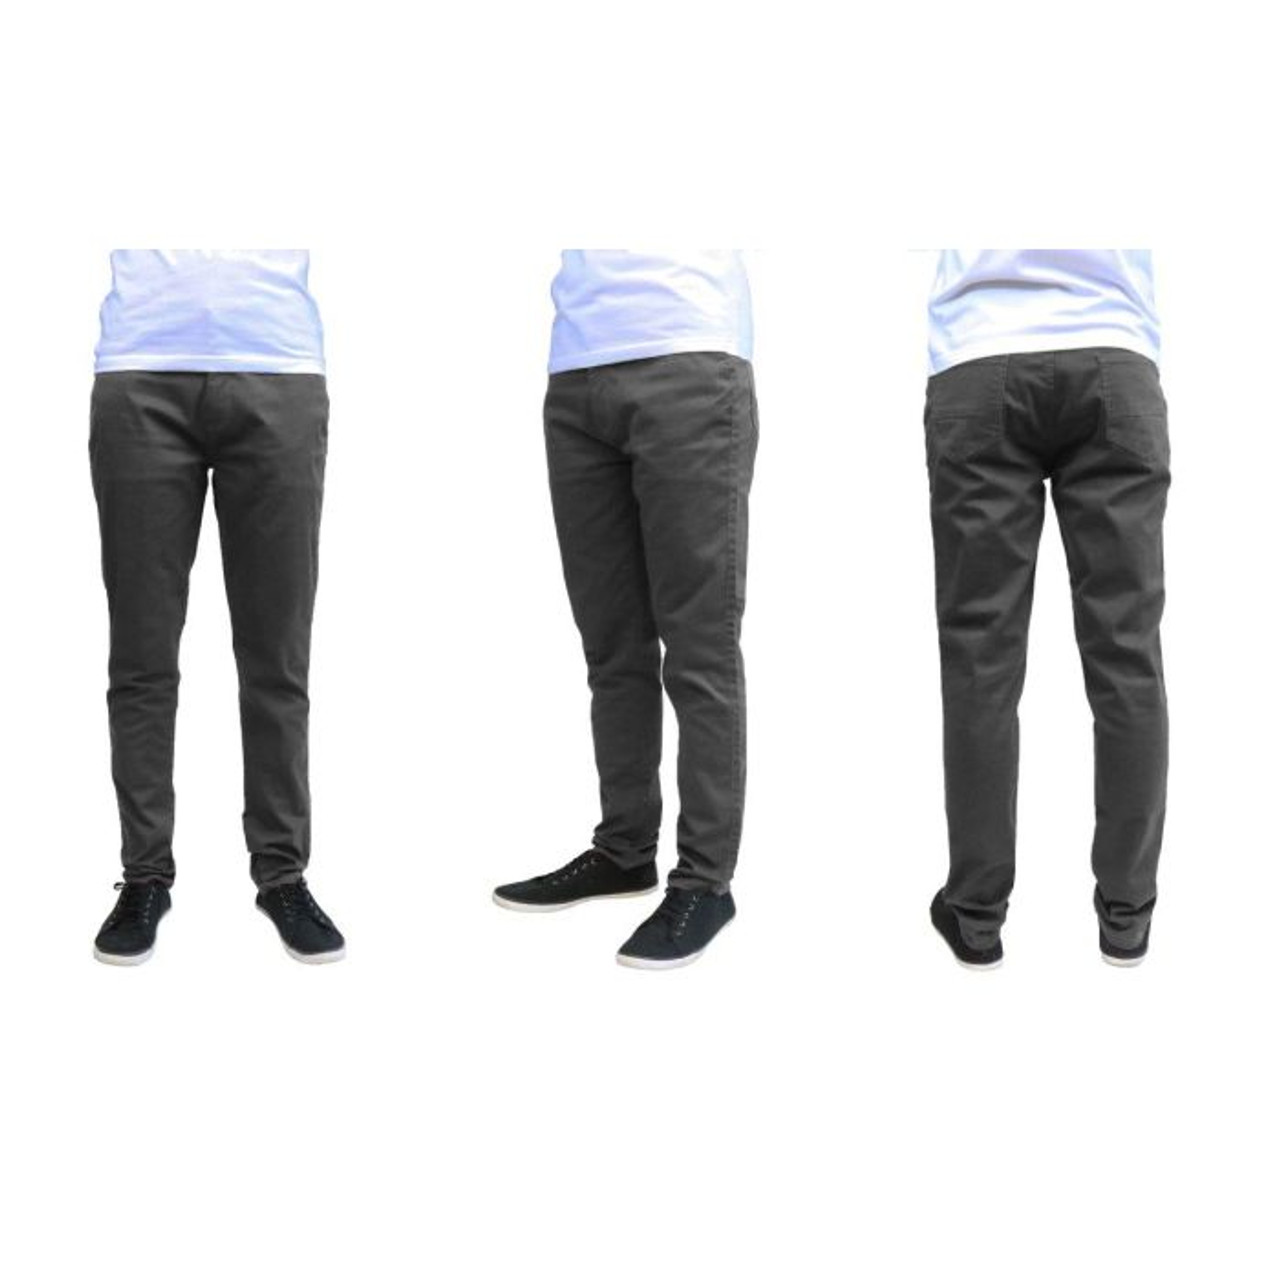 Men's Galaxy By Harvic Slim Fit Cotton Stretch Chino Pants